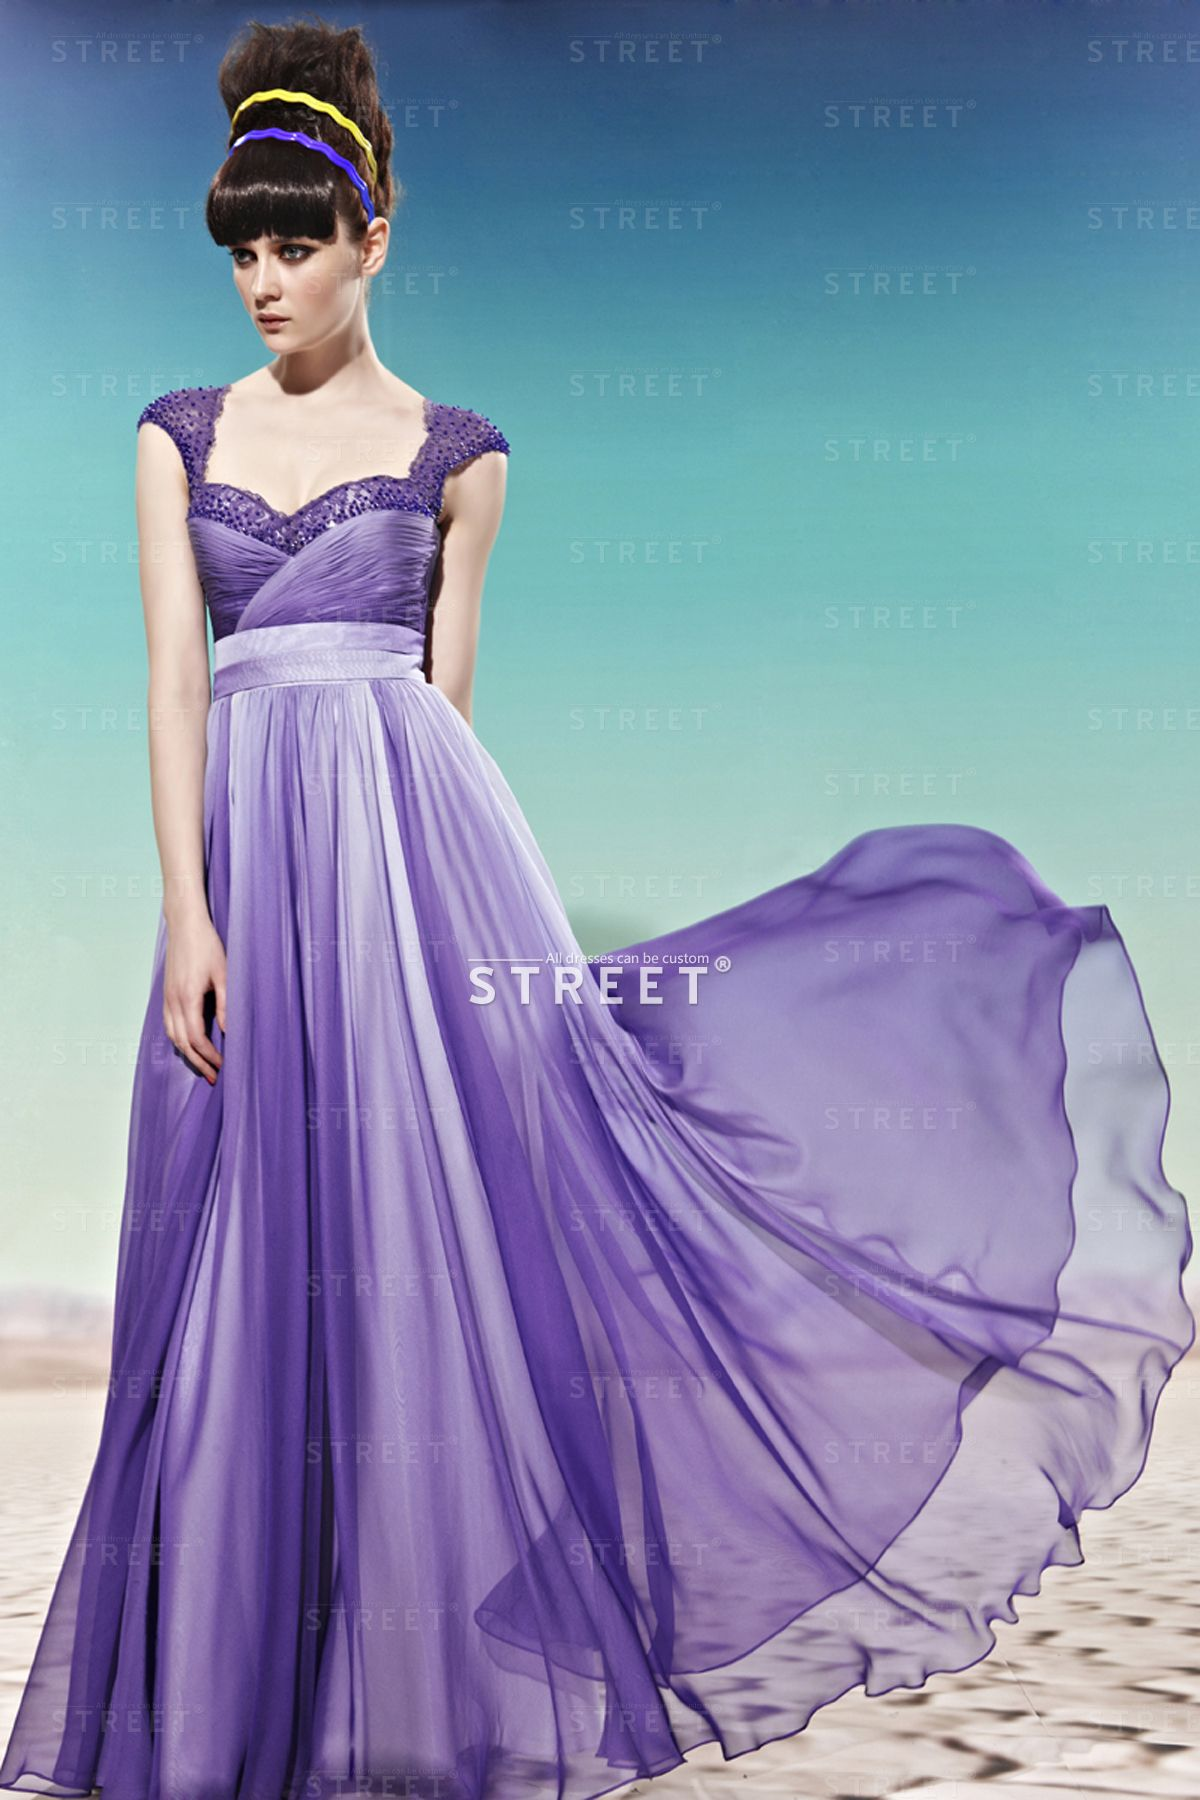 Scoop Neck Lavender Sleeveless Empire Waist Evening Dress Petite Uk ...